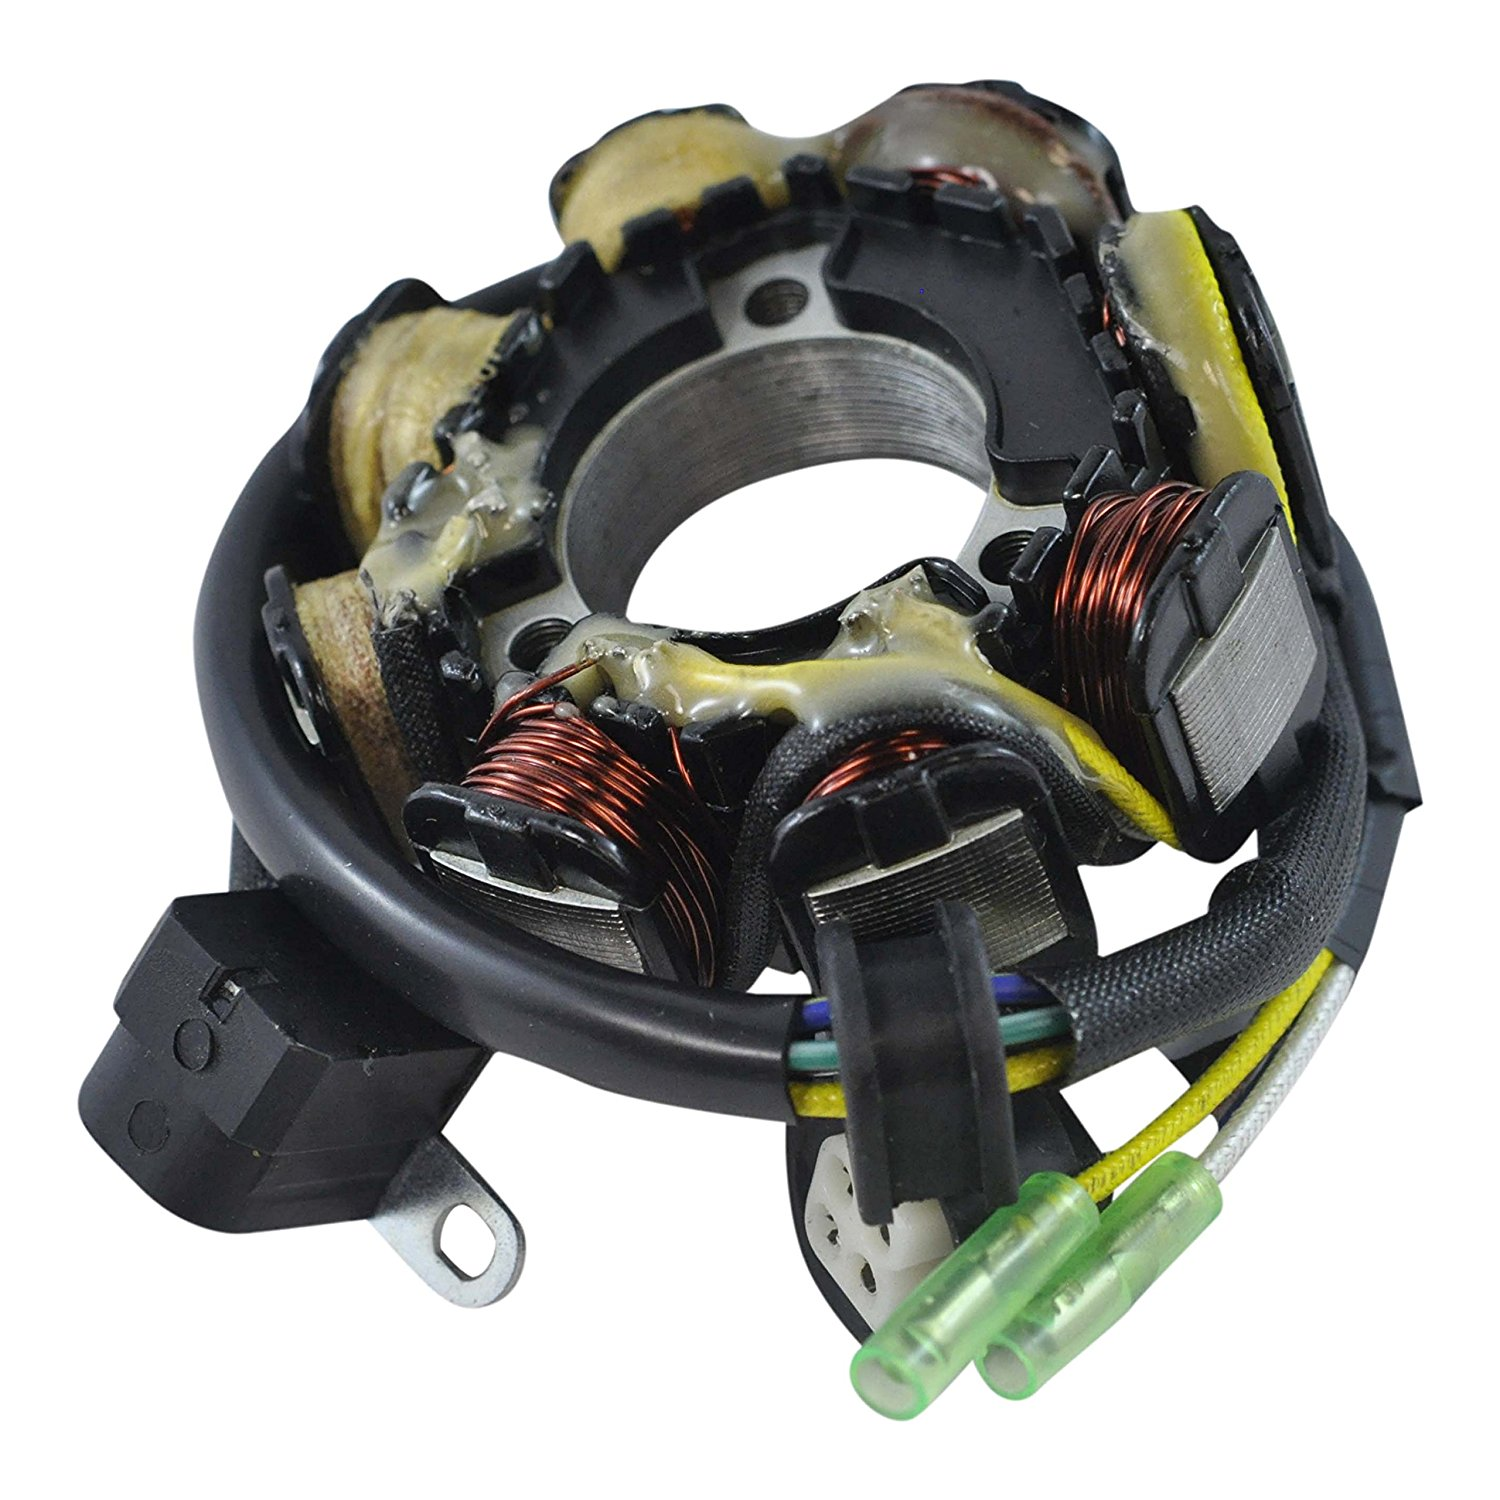 hight resolution of get quotations stator for yamaha yfb 250 timberwolf 1992 1993